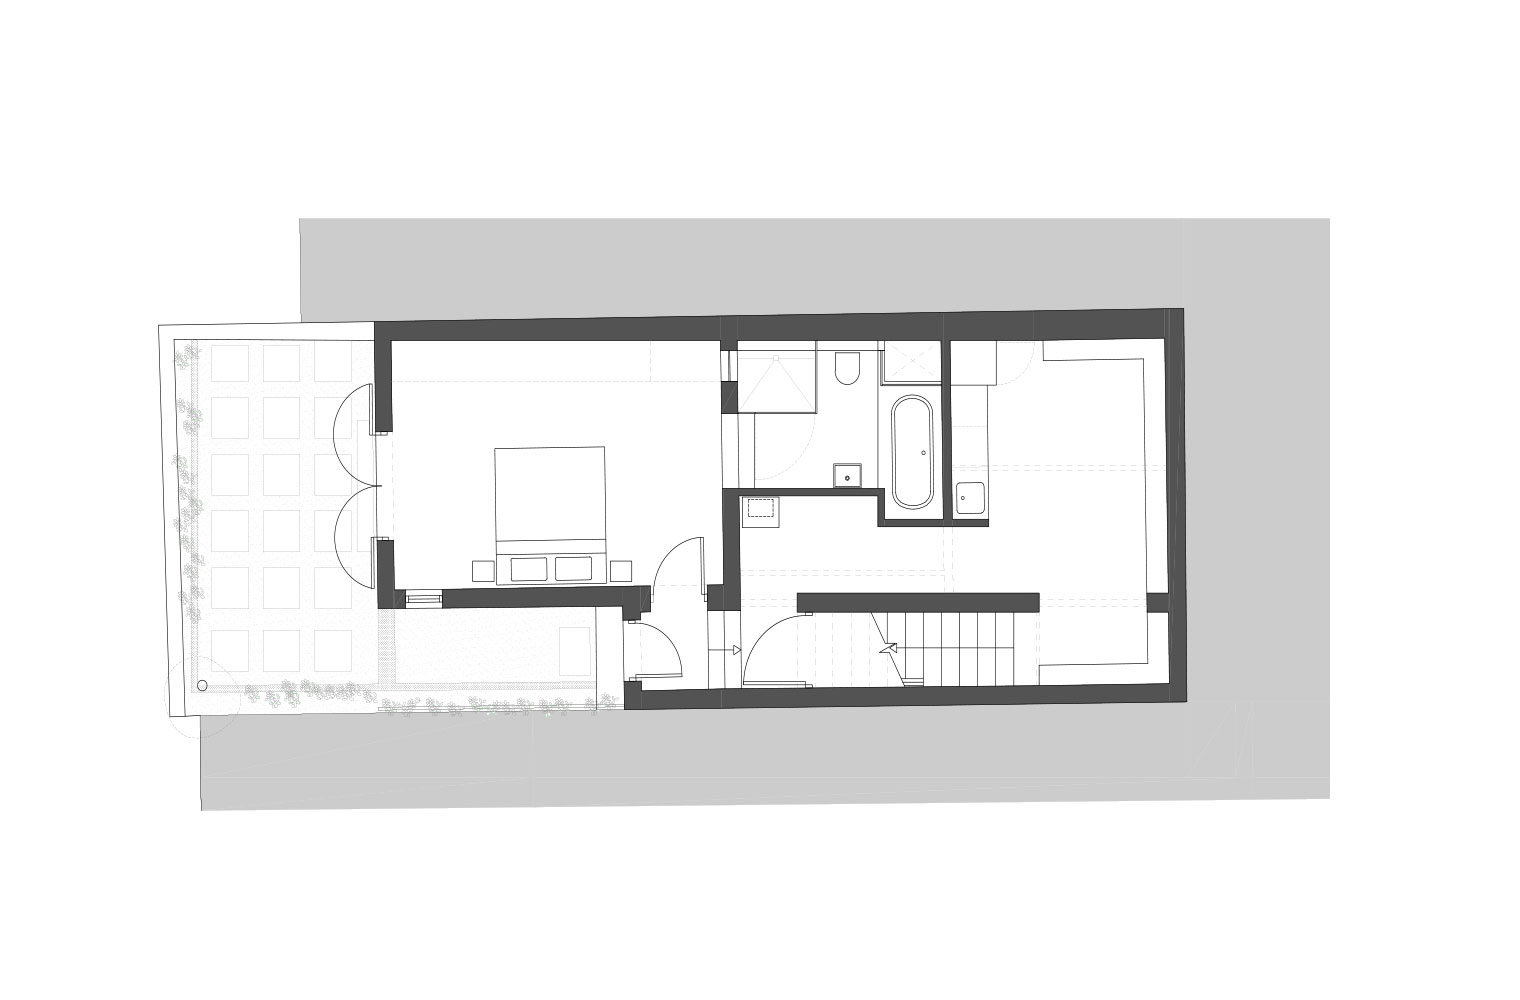 43 Lion Street - Lower Ground Floor Plan